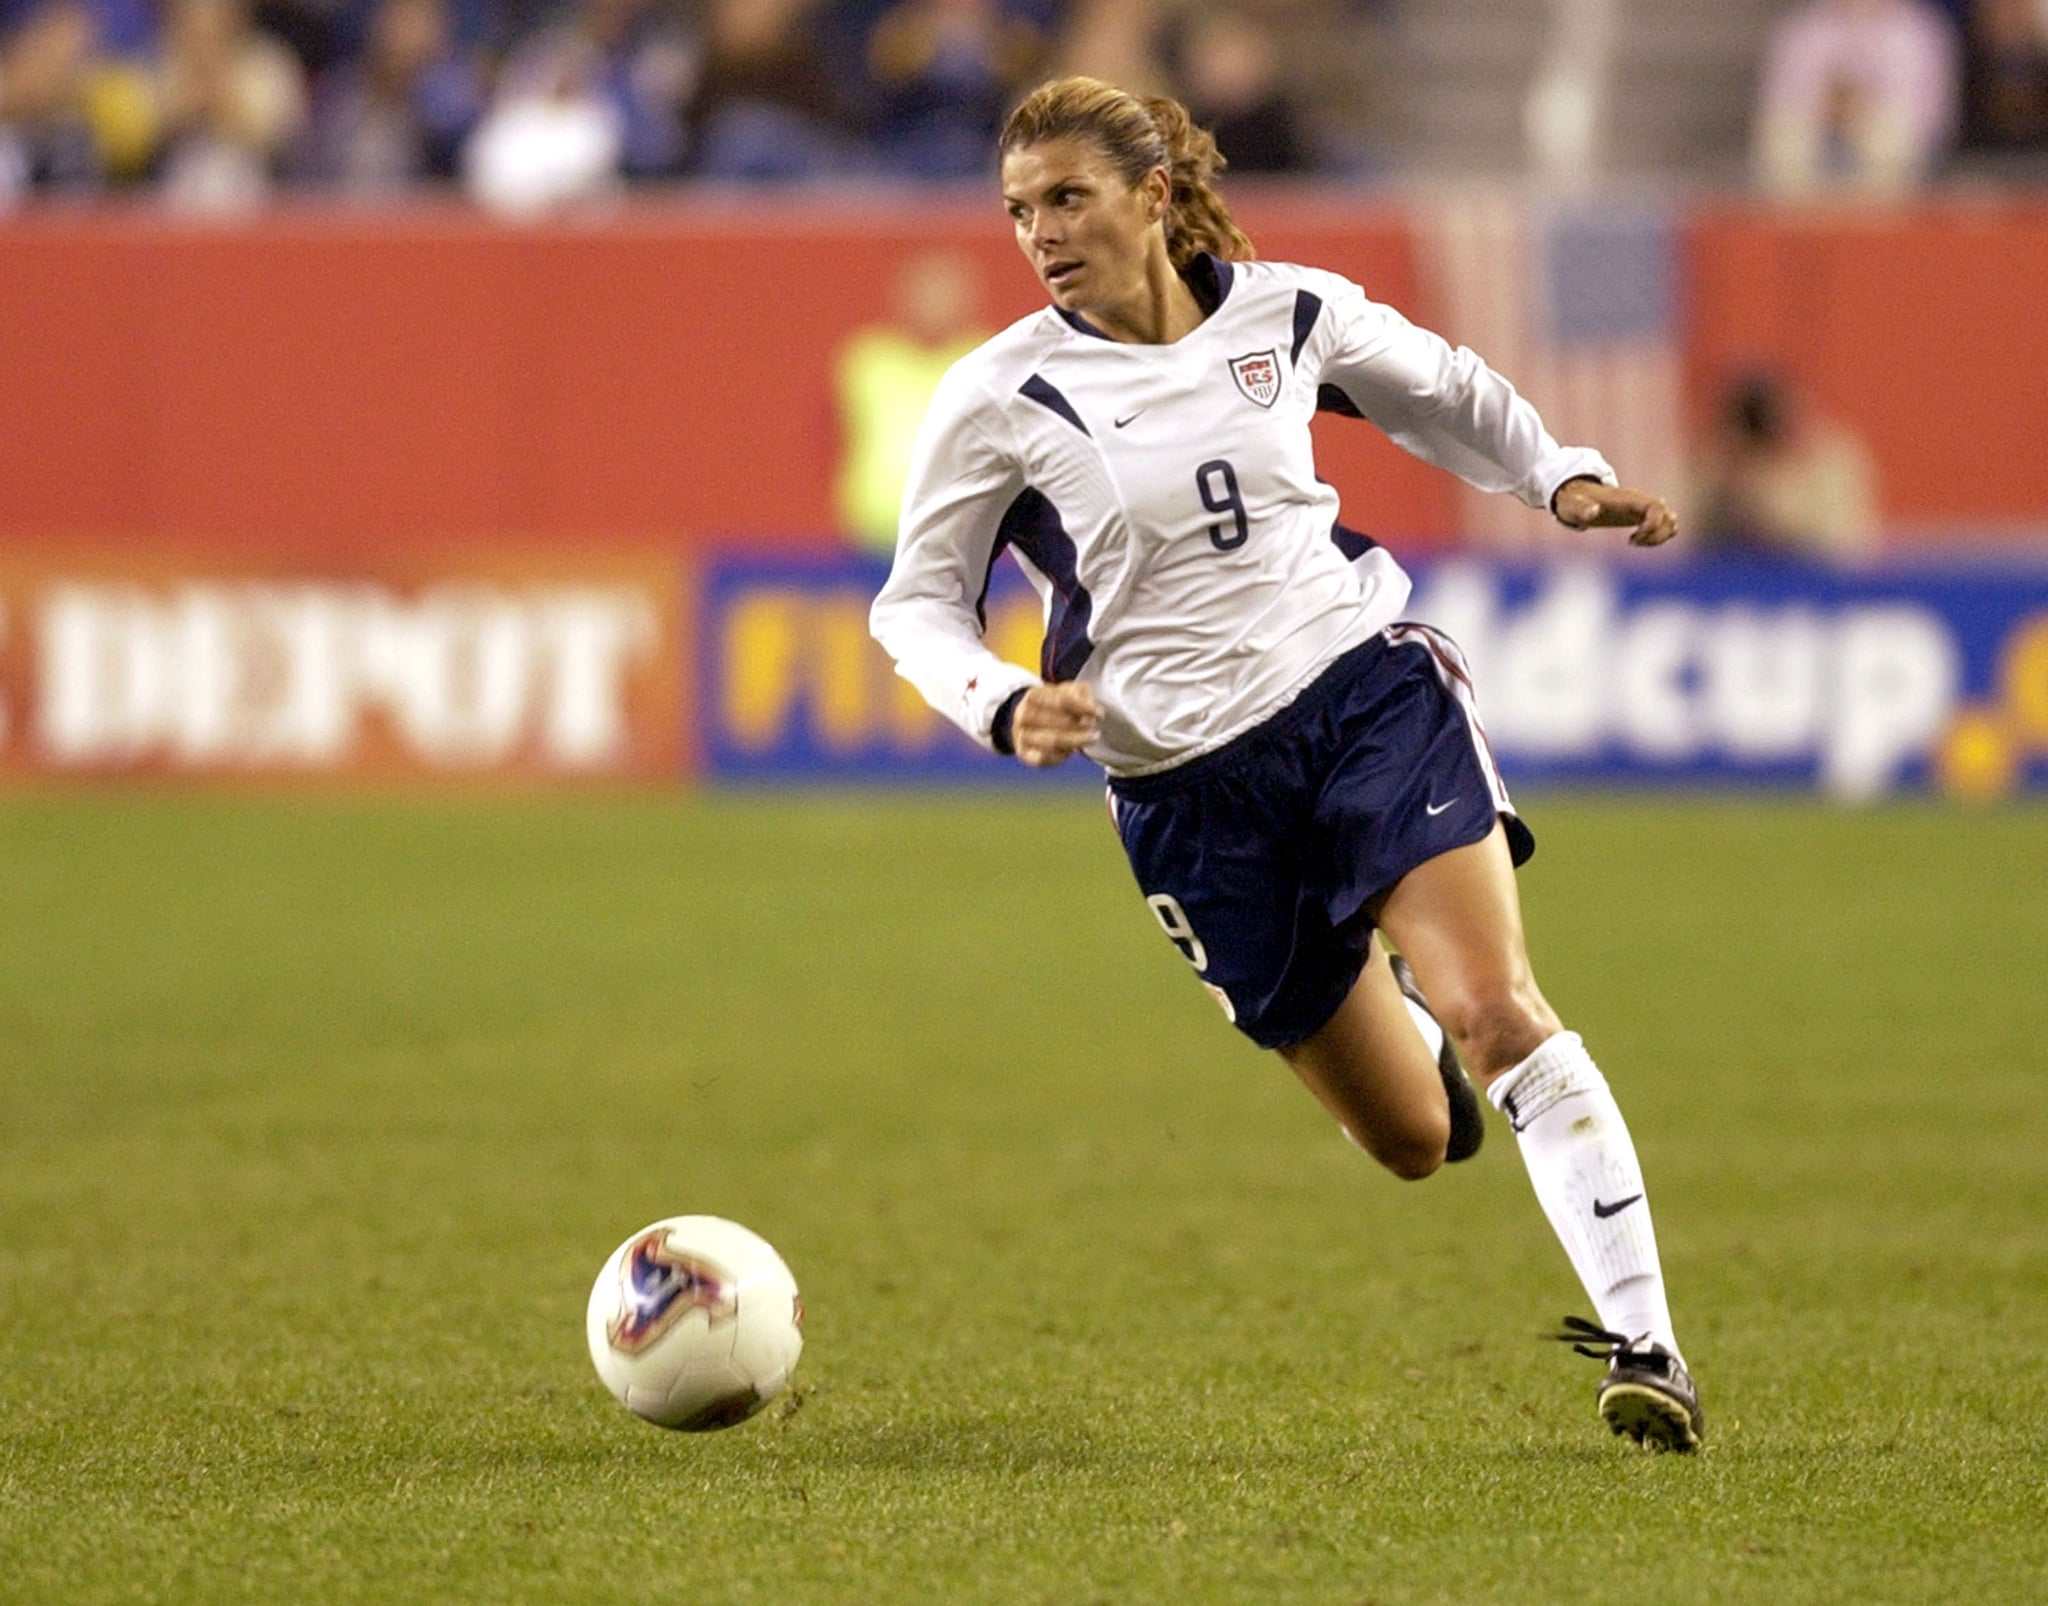 United States  forward Mia Hamm breaks upfield    October 1, 2003 at Gillette Stadium, Foxboro, Massachuttes, during the quarterfinals  of the FIFA Women's  World Cup USA 2003.   The U. S. defeated Norway 1 - 0. (Photo by A. Messerschmidt/Getty Images)